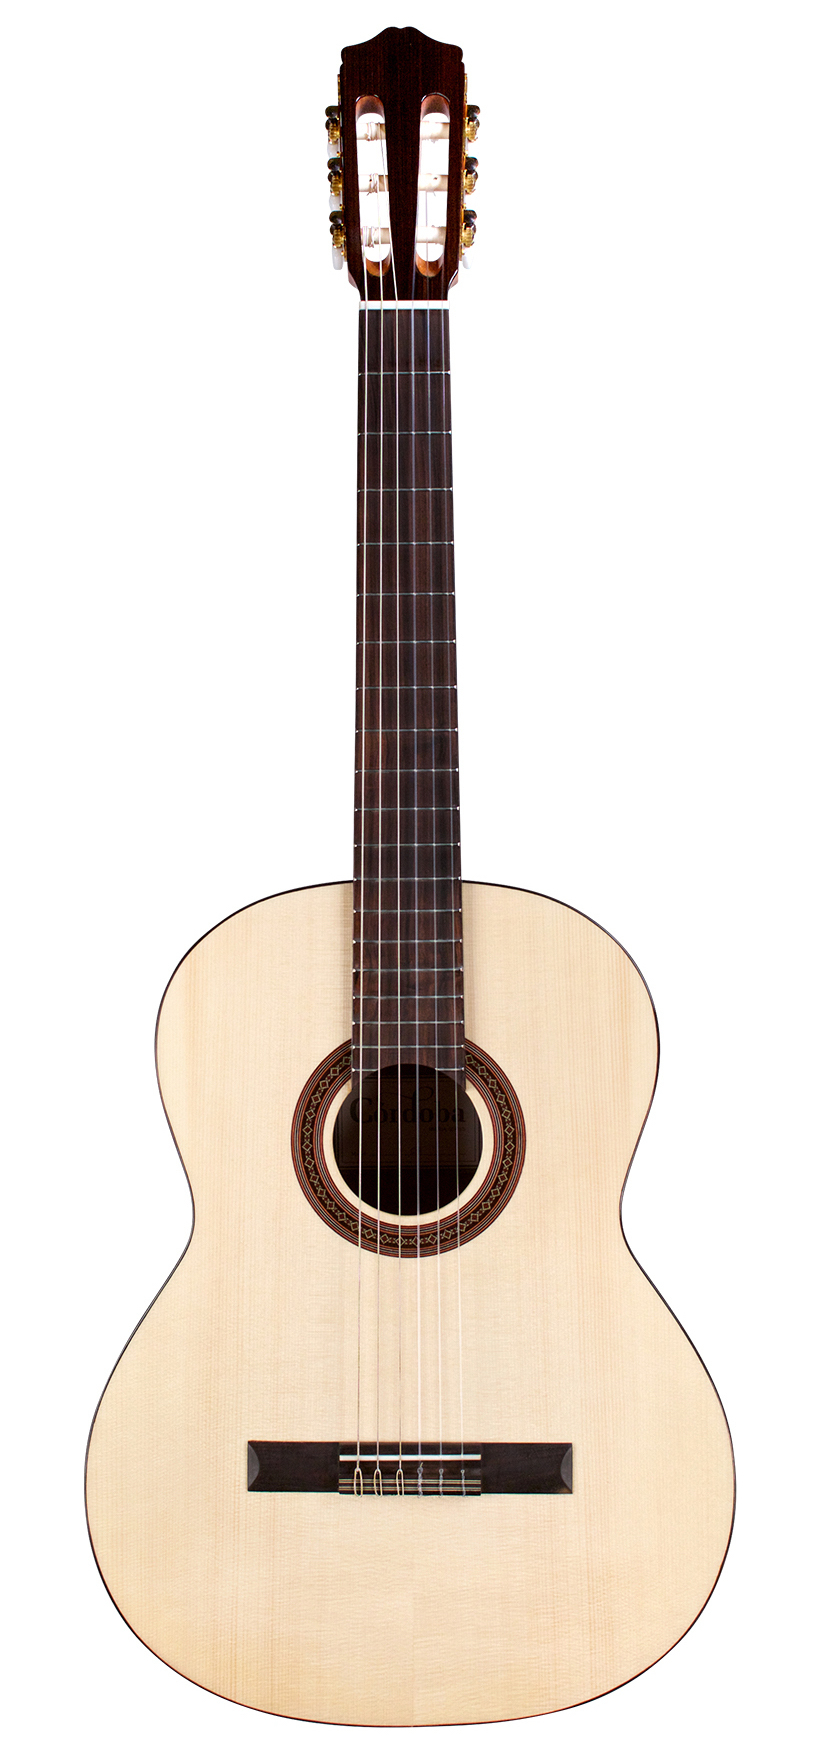 Cordoba C5 Spruce - Solid Englemann Spruce top, Mahogany back/sides, 650mm Scale Length 00292